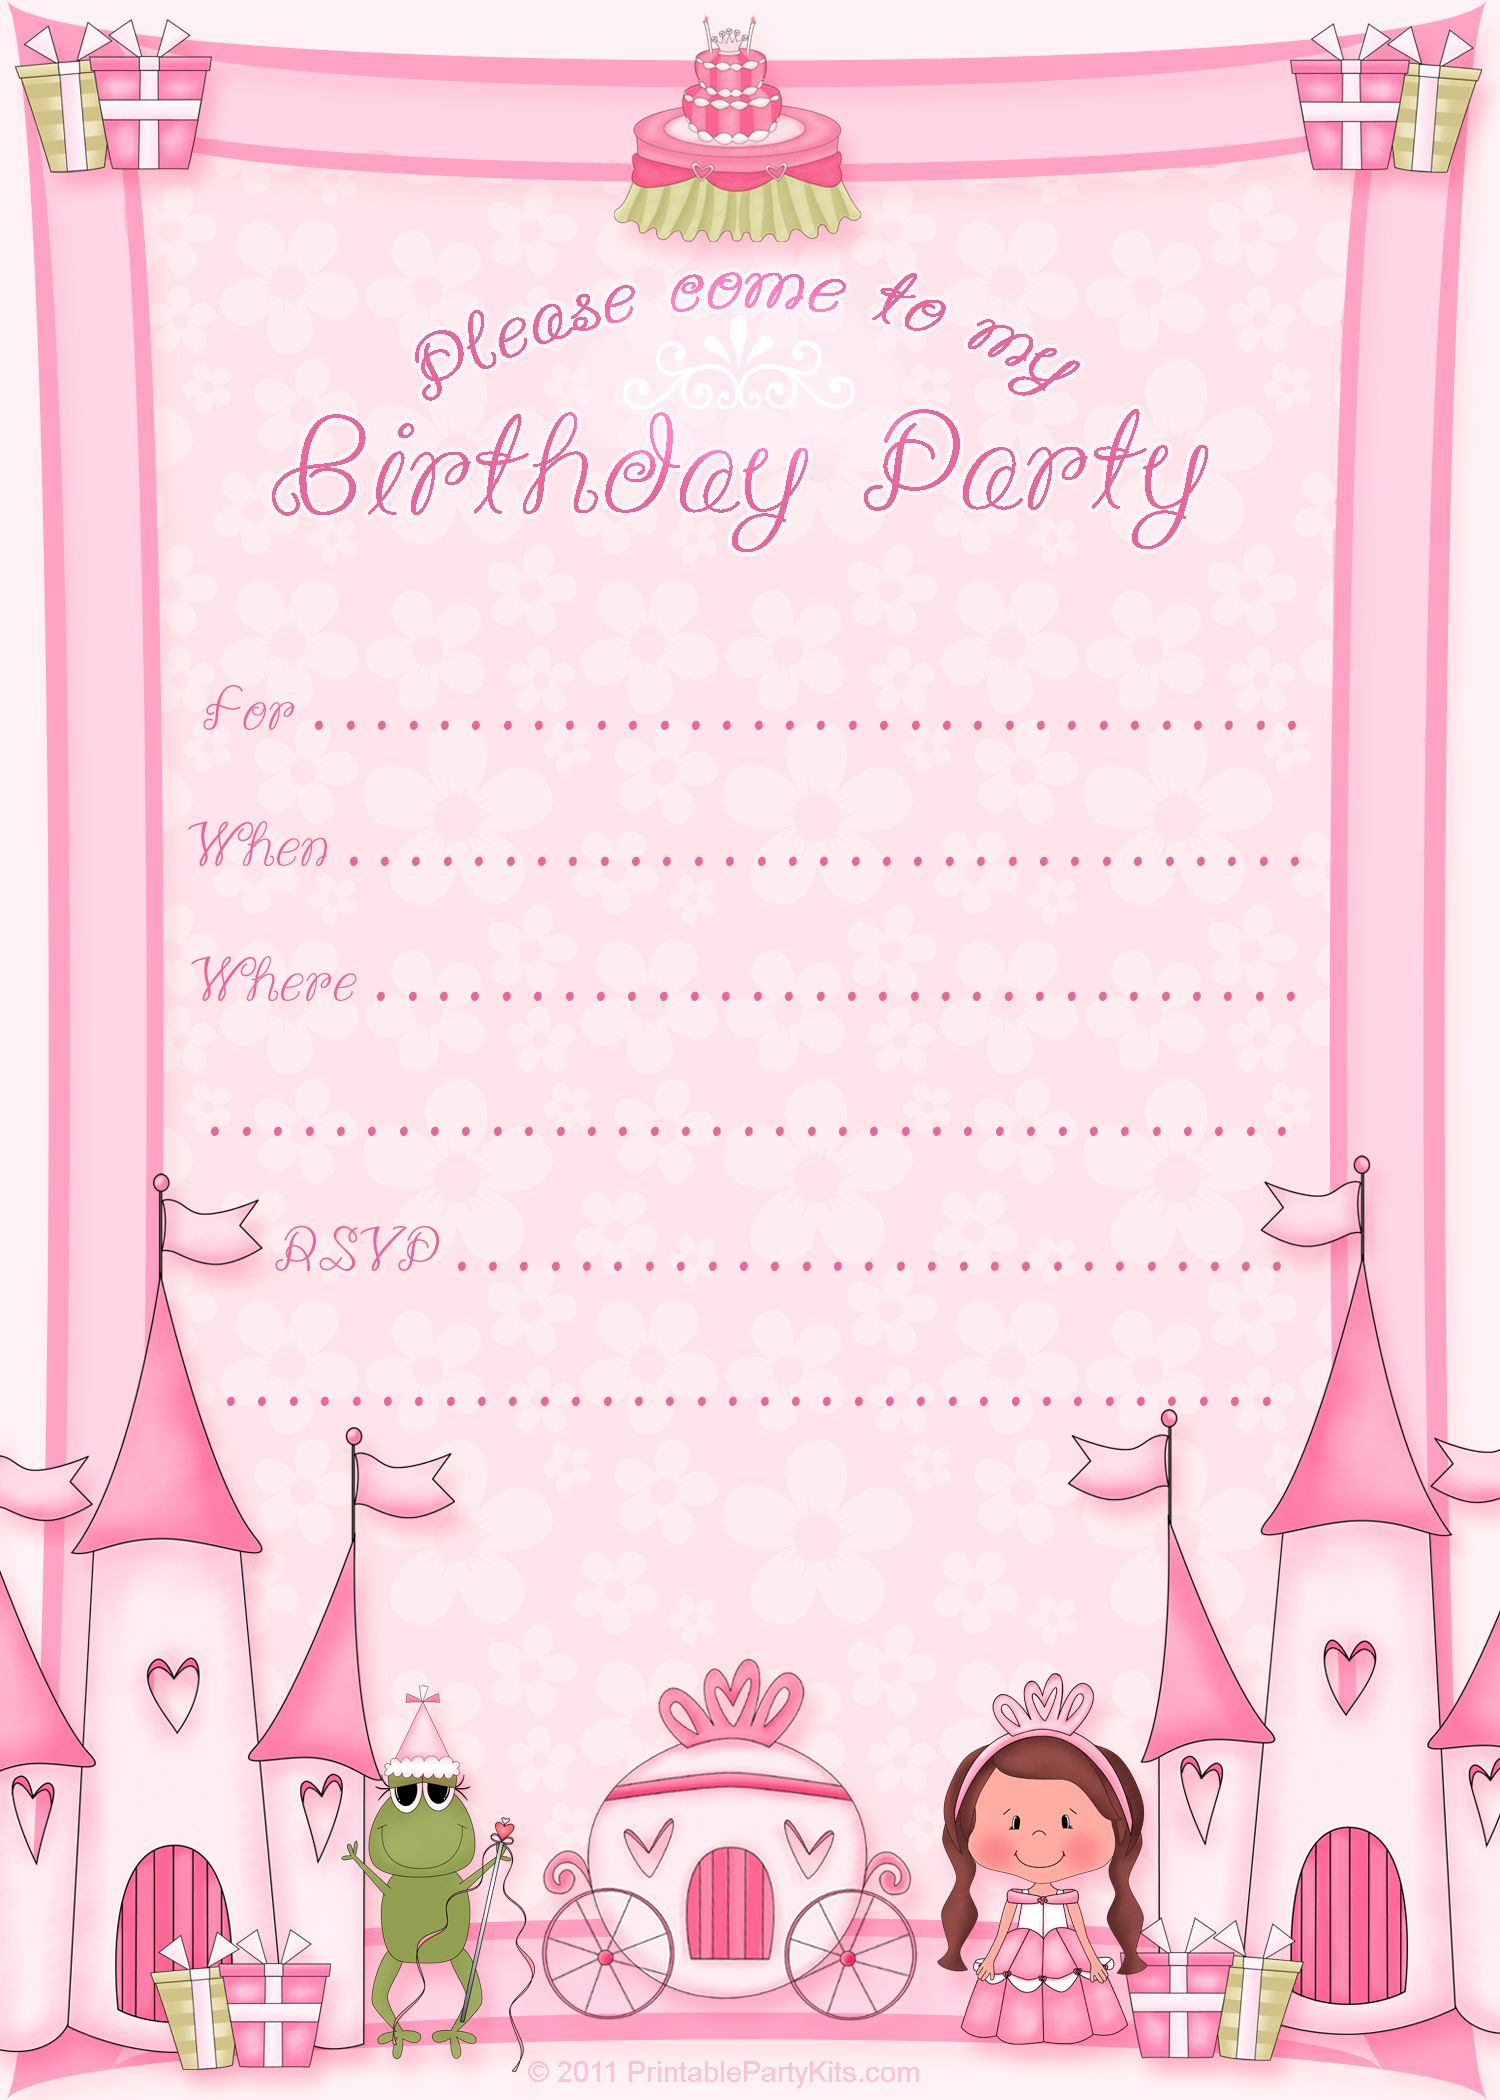 Free Printable Invitation Pinned For Kidfolio The Parenting Mobile App That Makes Sharing A Snap